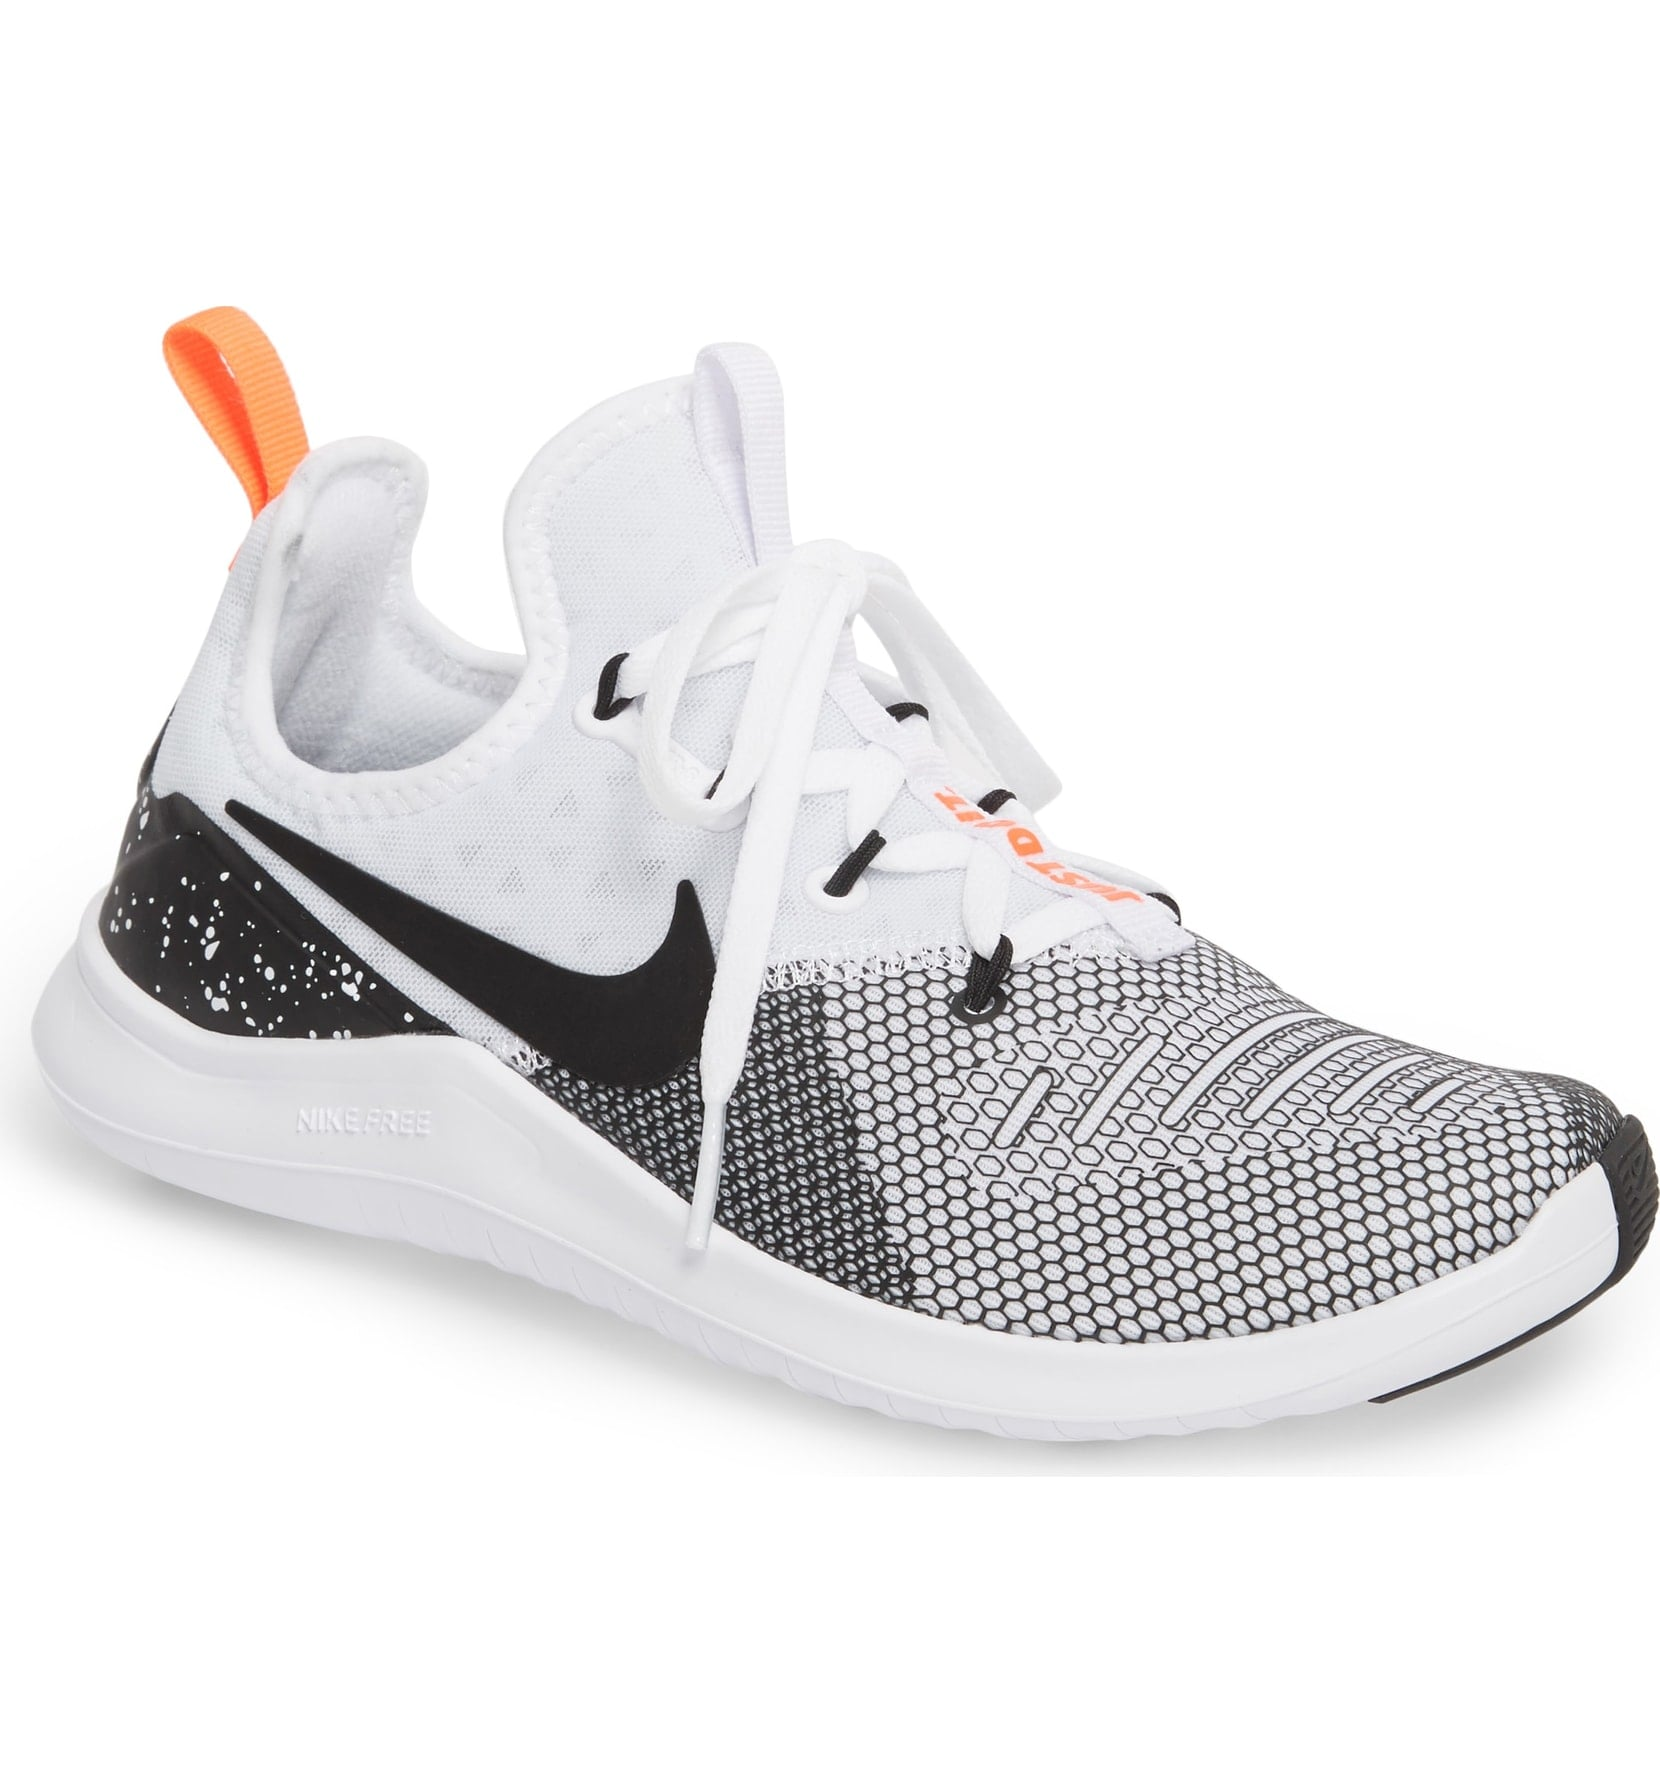 Nike Free TR8 Training Shoes | Our